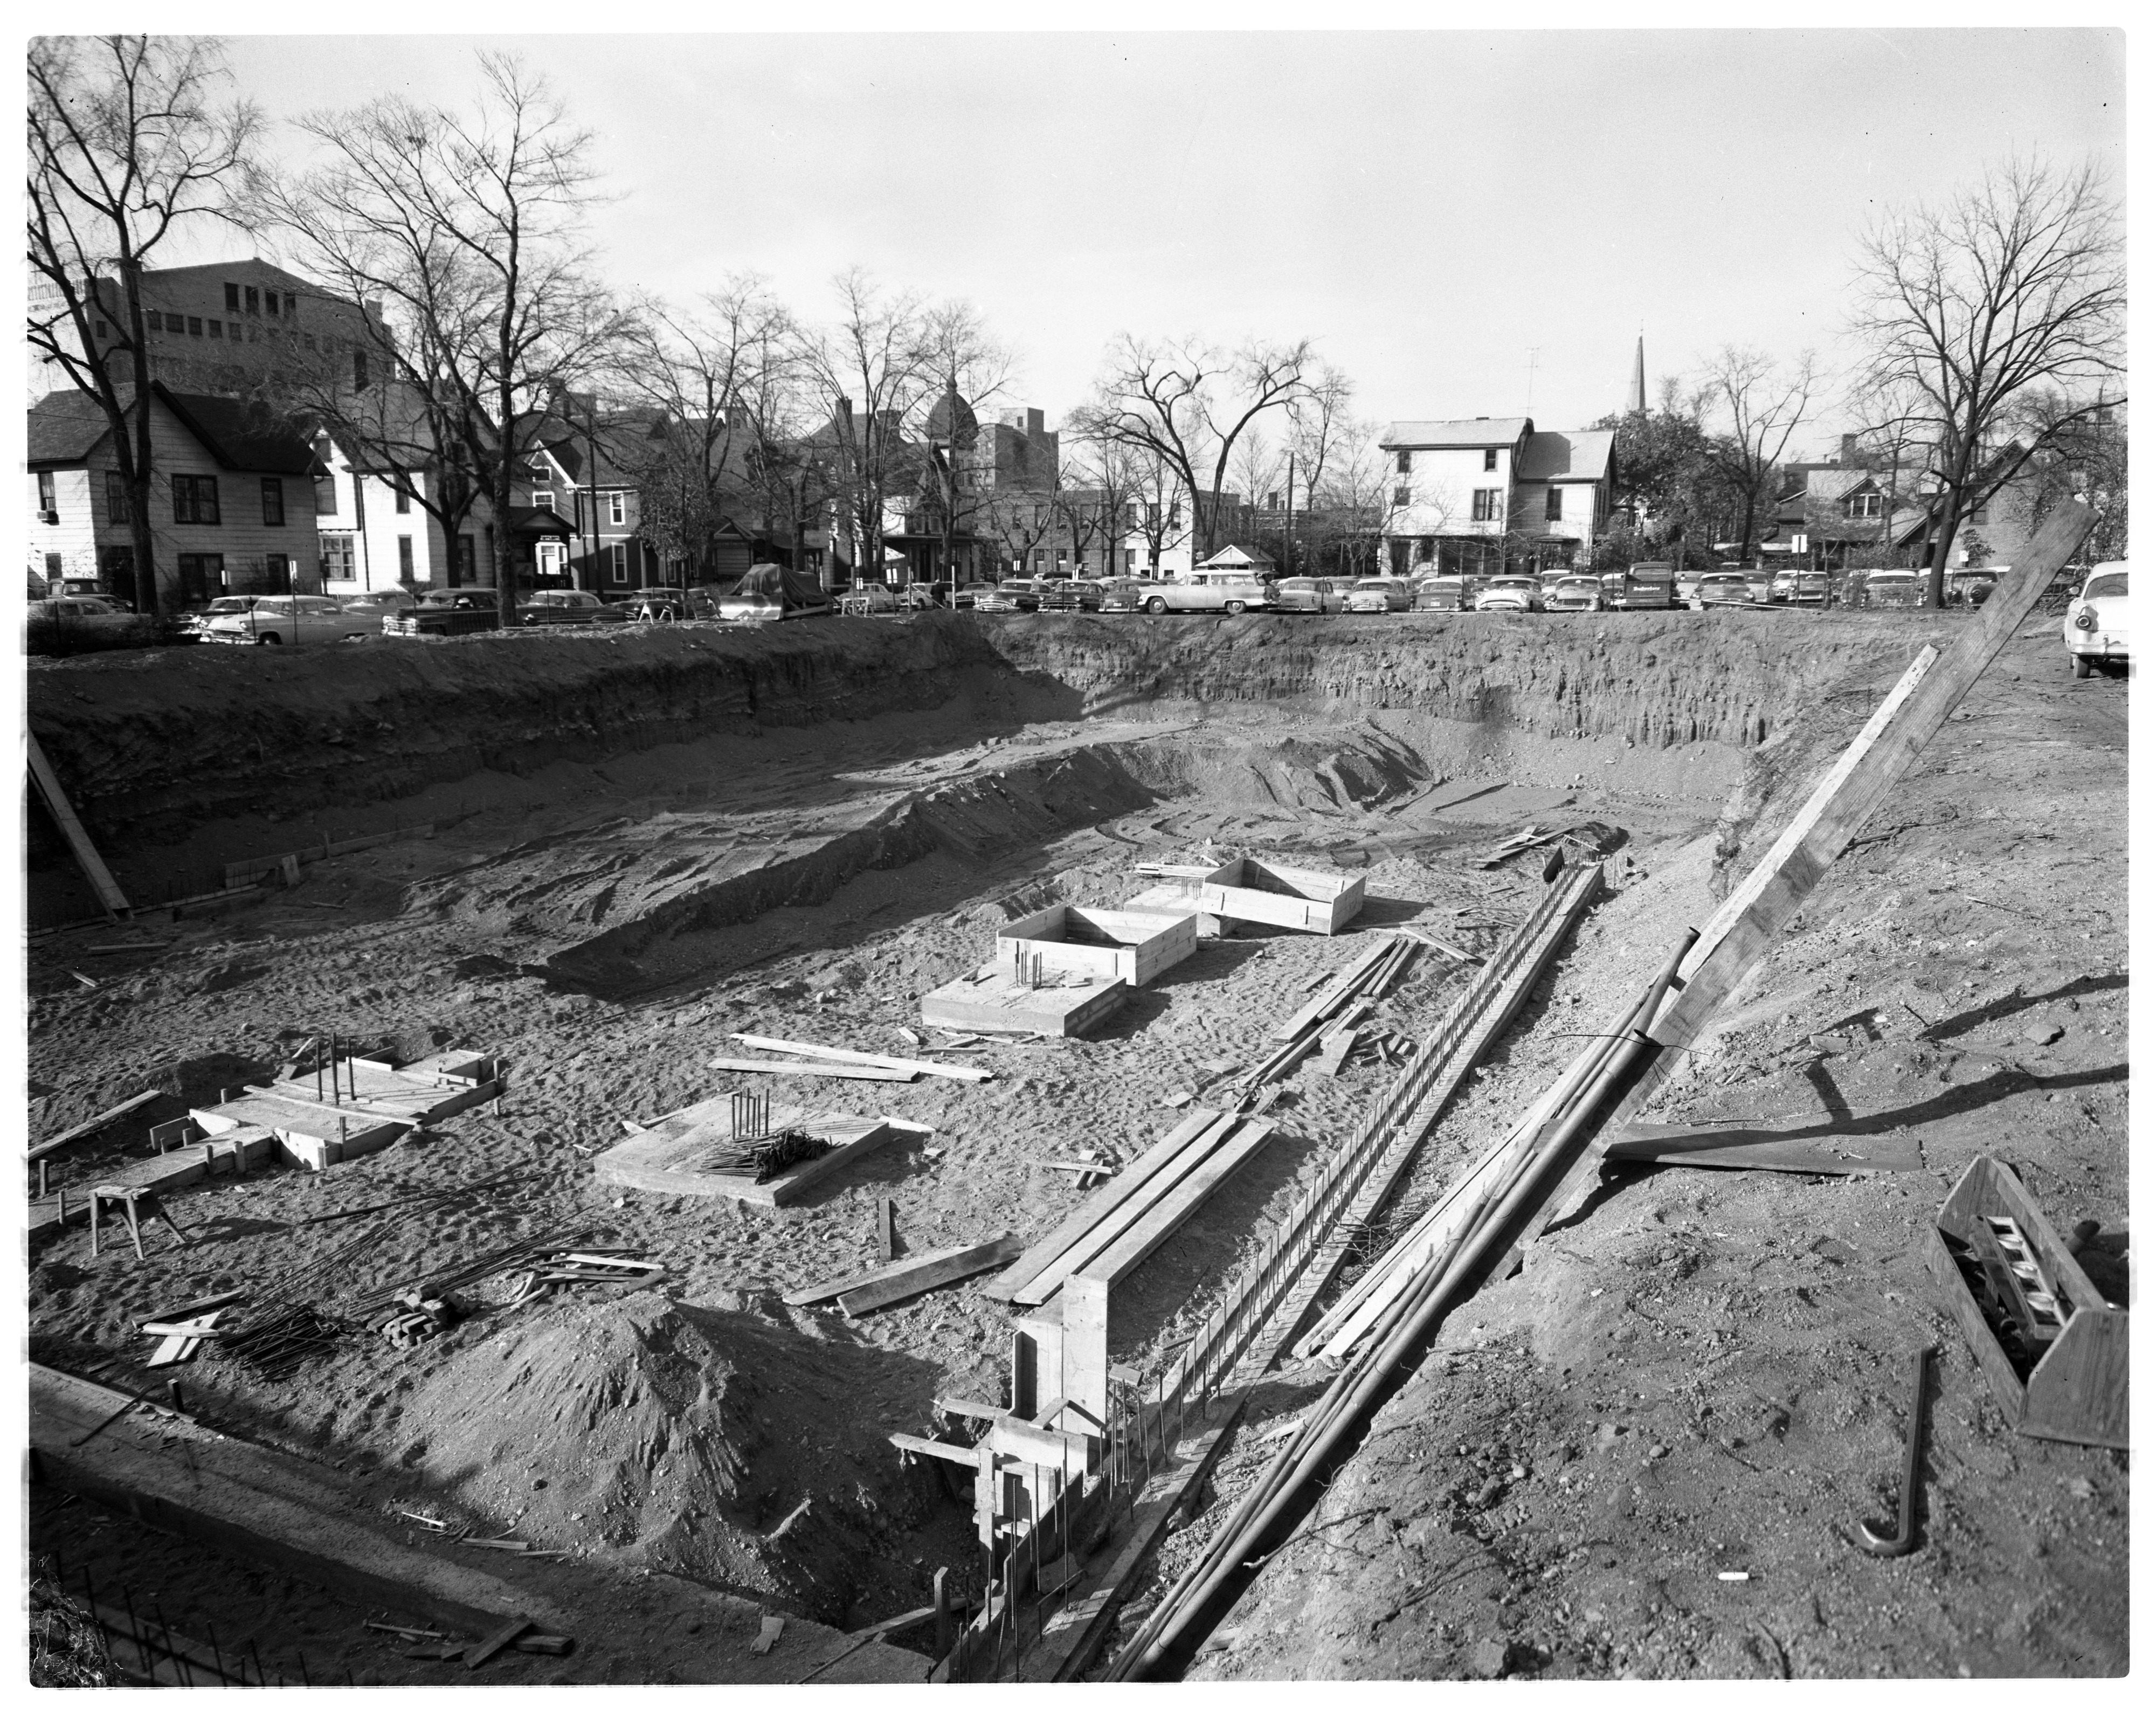 Construction Site of New Ann Arbor Public Library at S Fifth and E William, October 1956 image